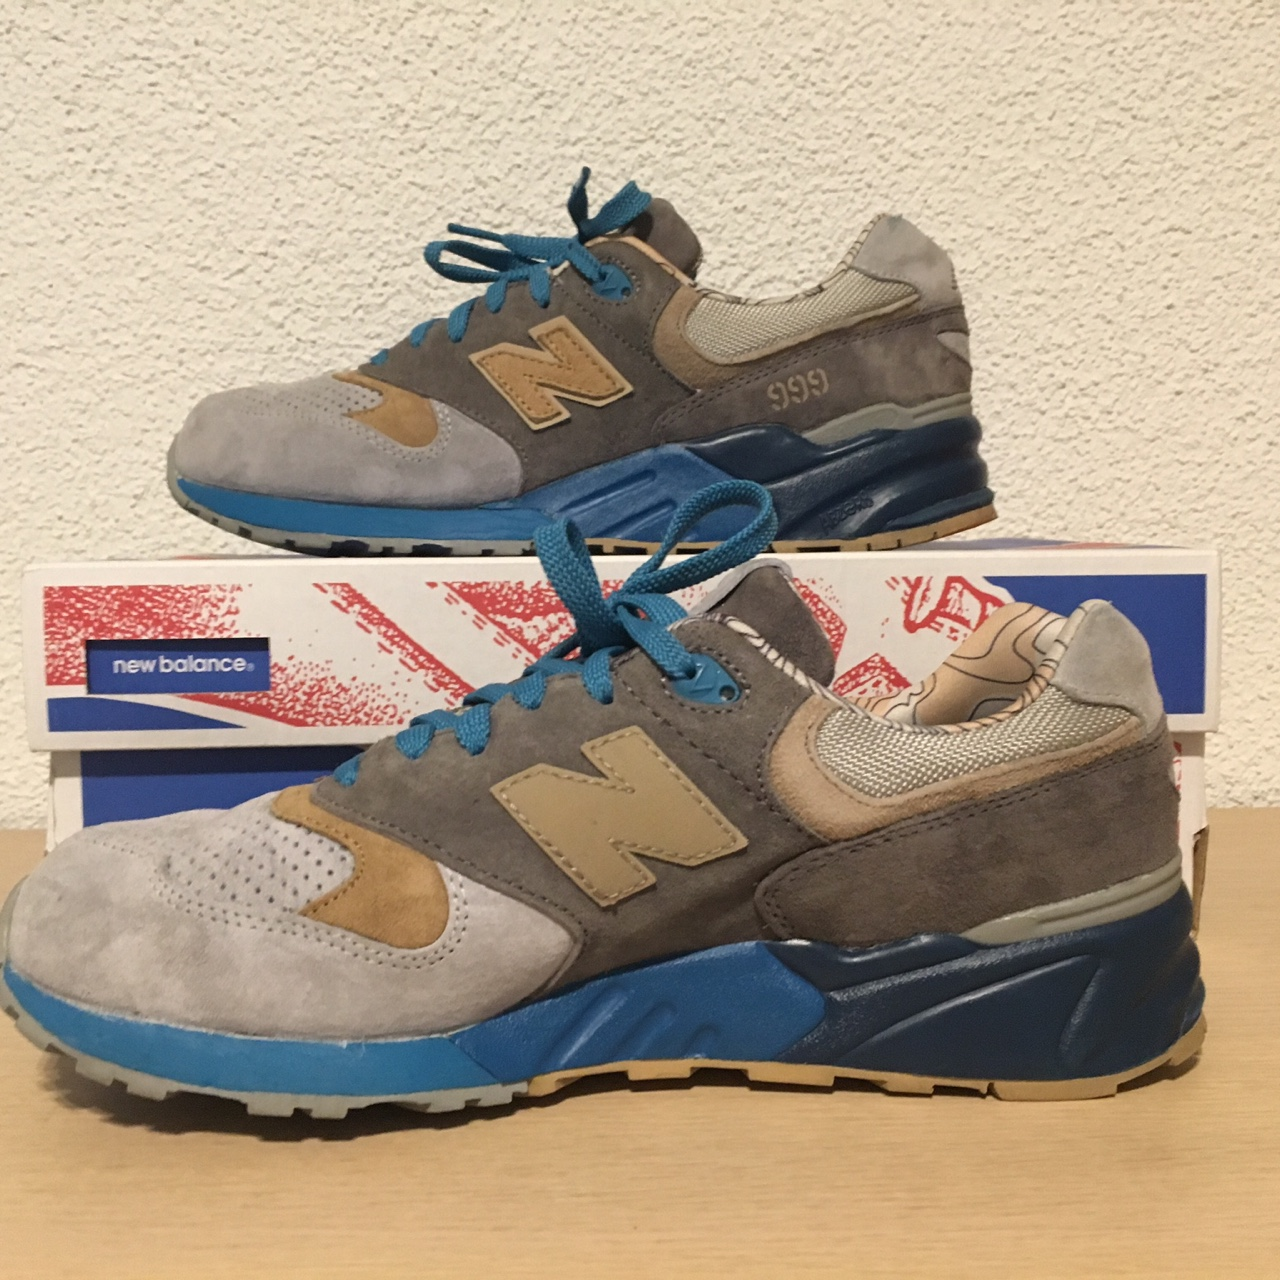 huge discount 929b0 d3899 New Balance Seal 999 x Concepts; US 10; Condition is ...